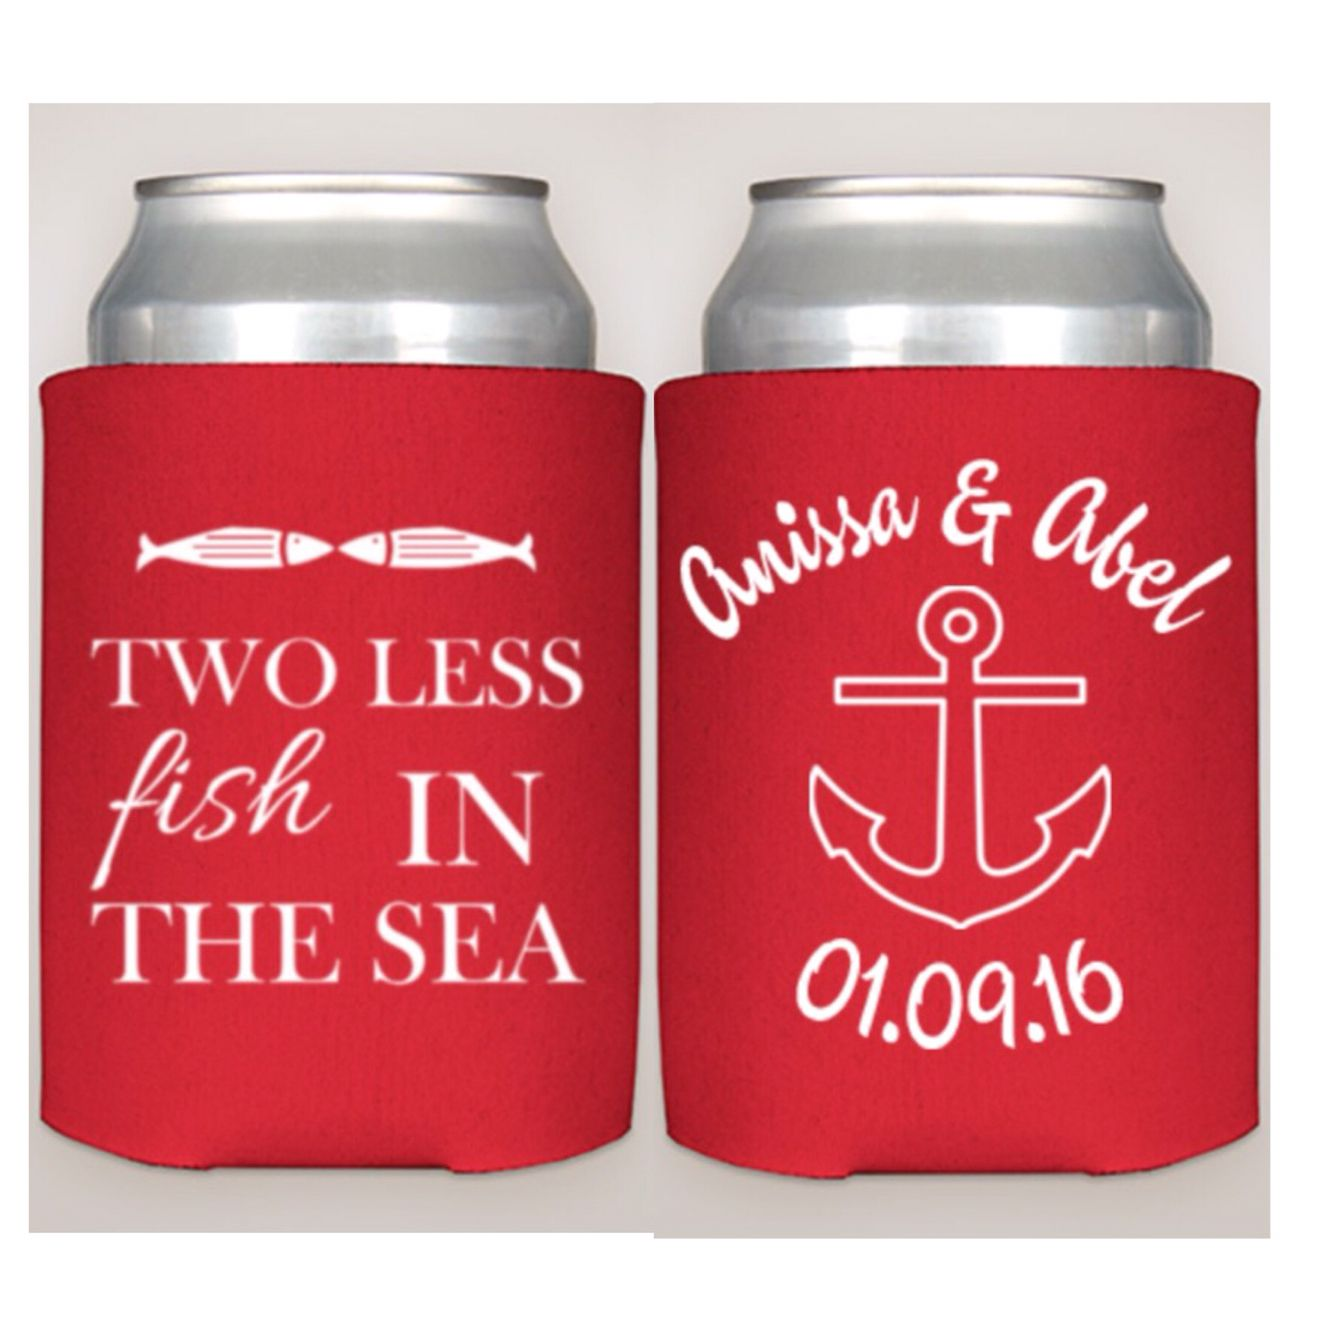 2 Less Fish In The Sea Etsy Drinkonitkoozies